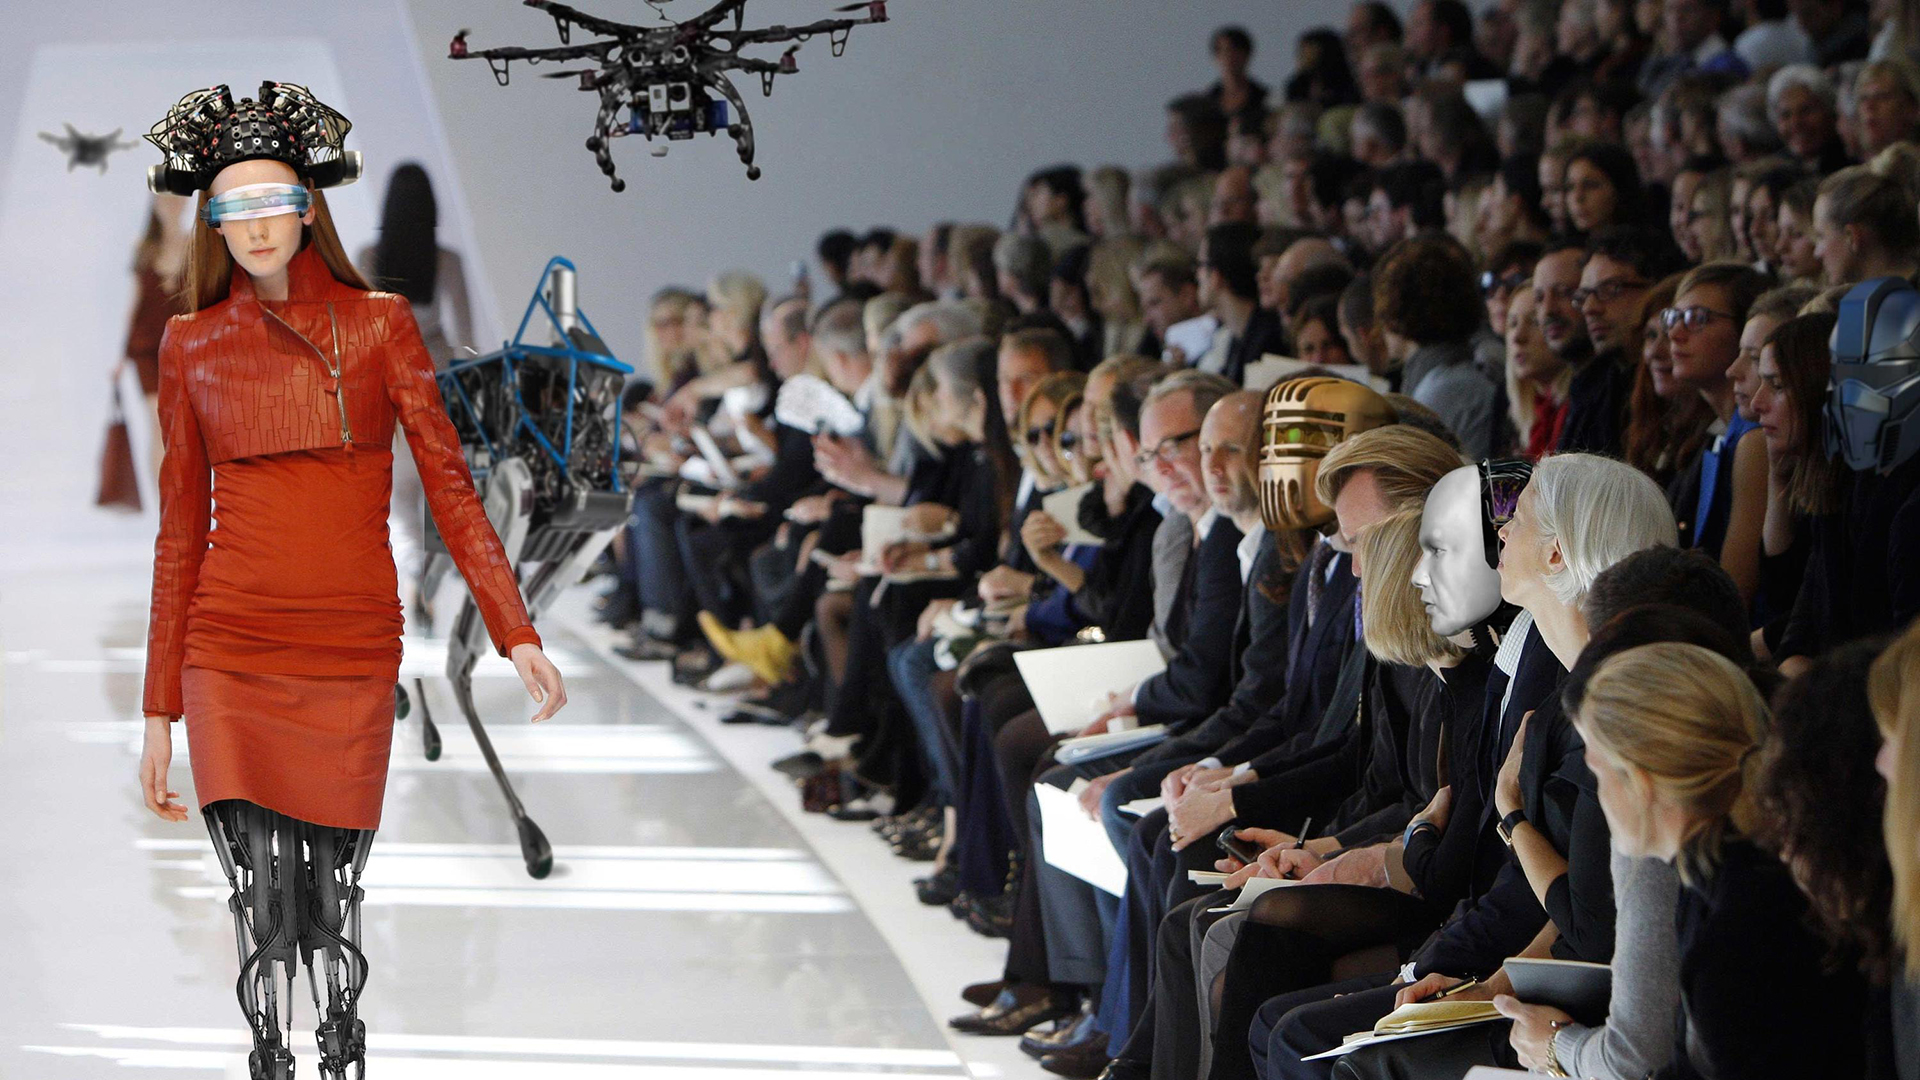 Drones And Dresses At Silicon Valleys First Fashion Week The Do